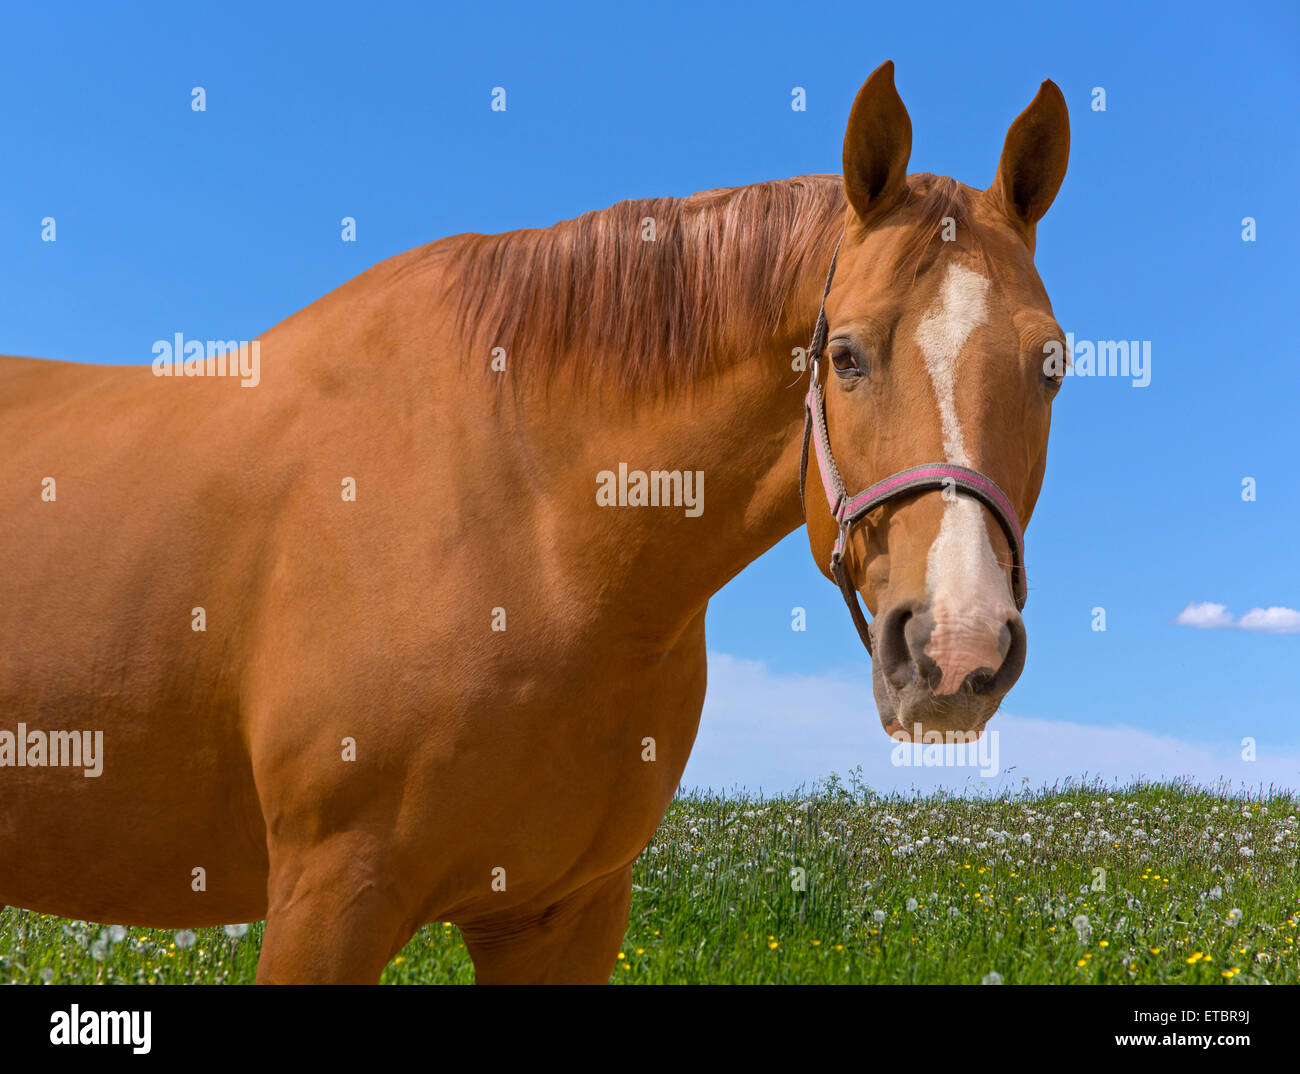 Sorrel horse on summer meadow looking at camera - Stock Image